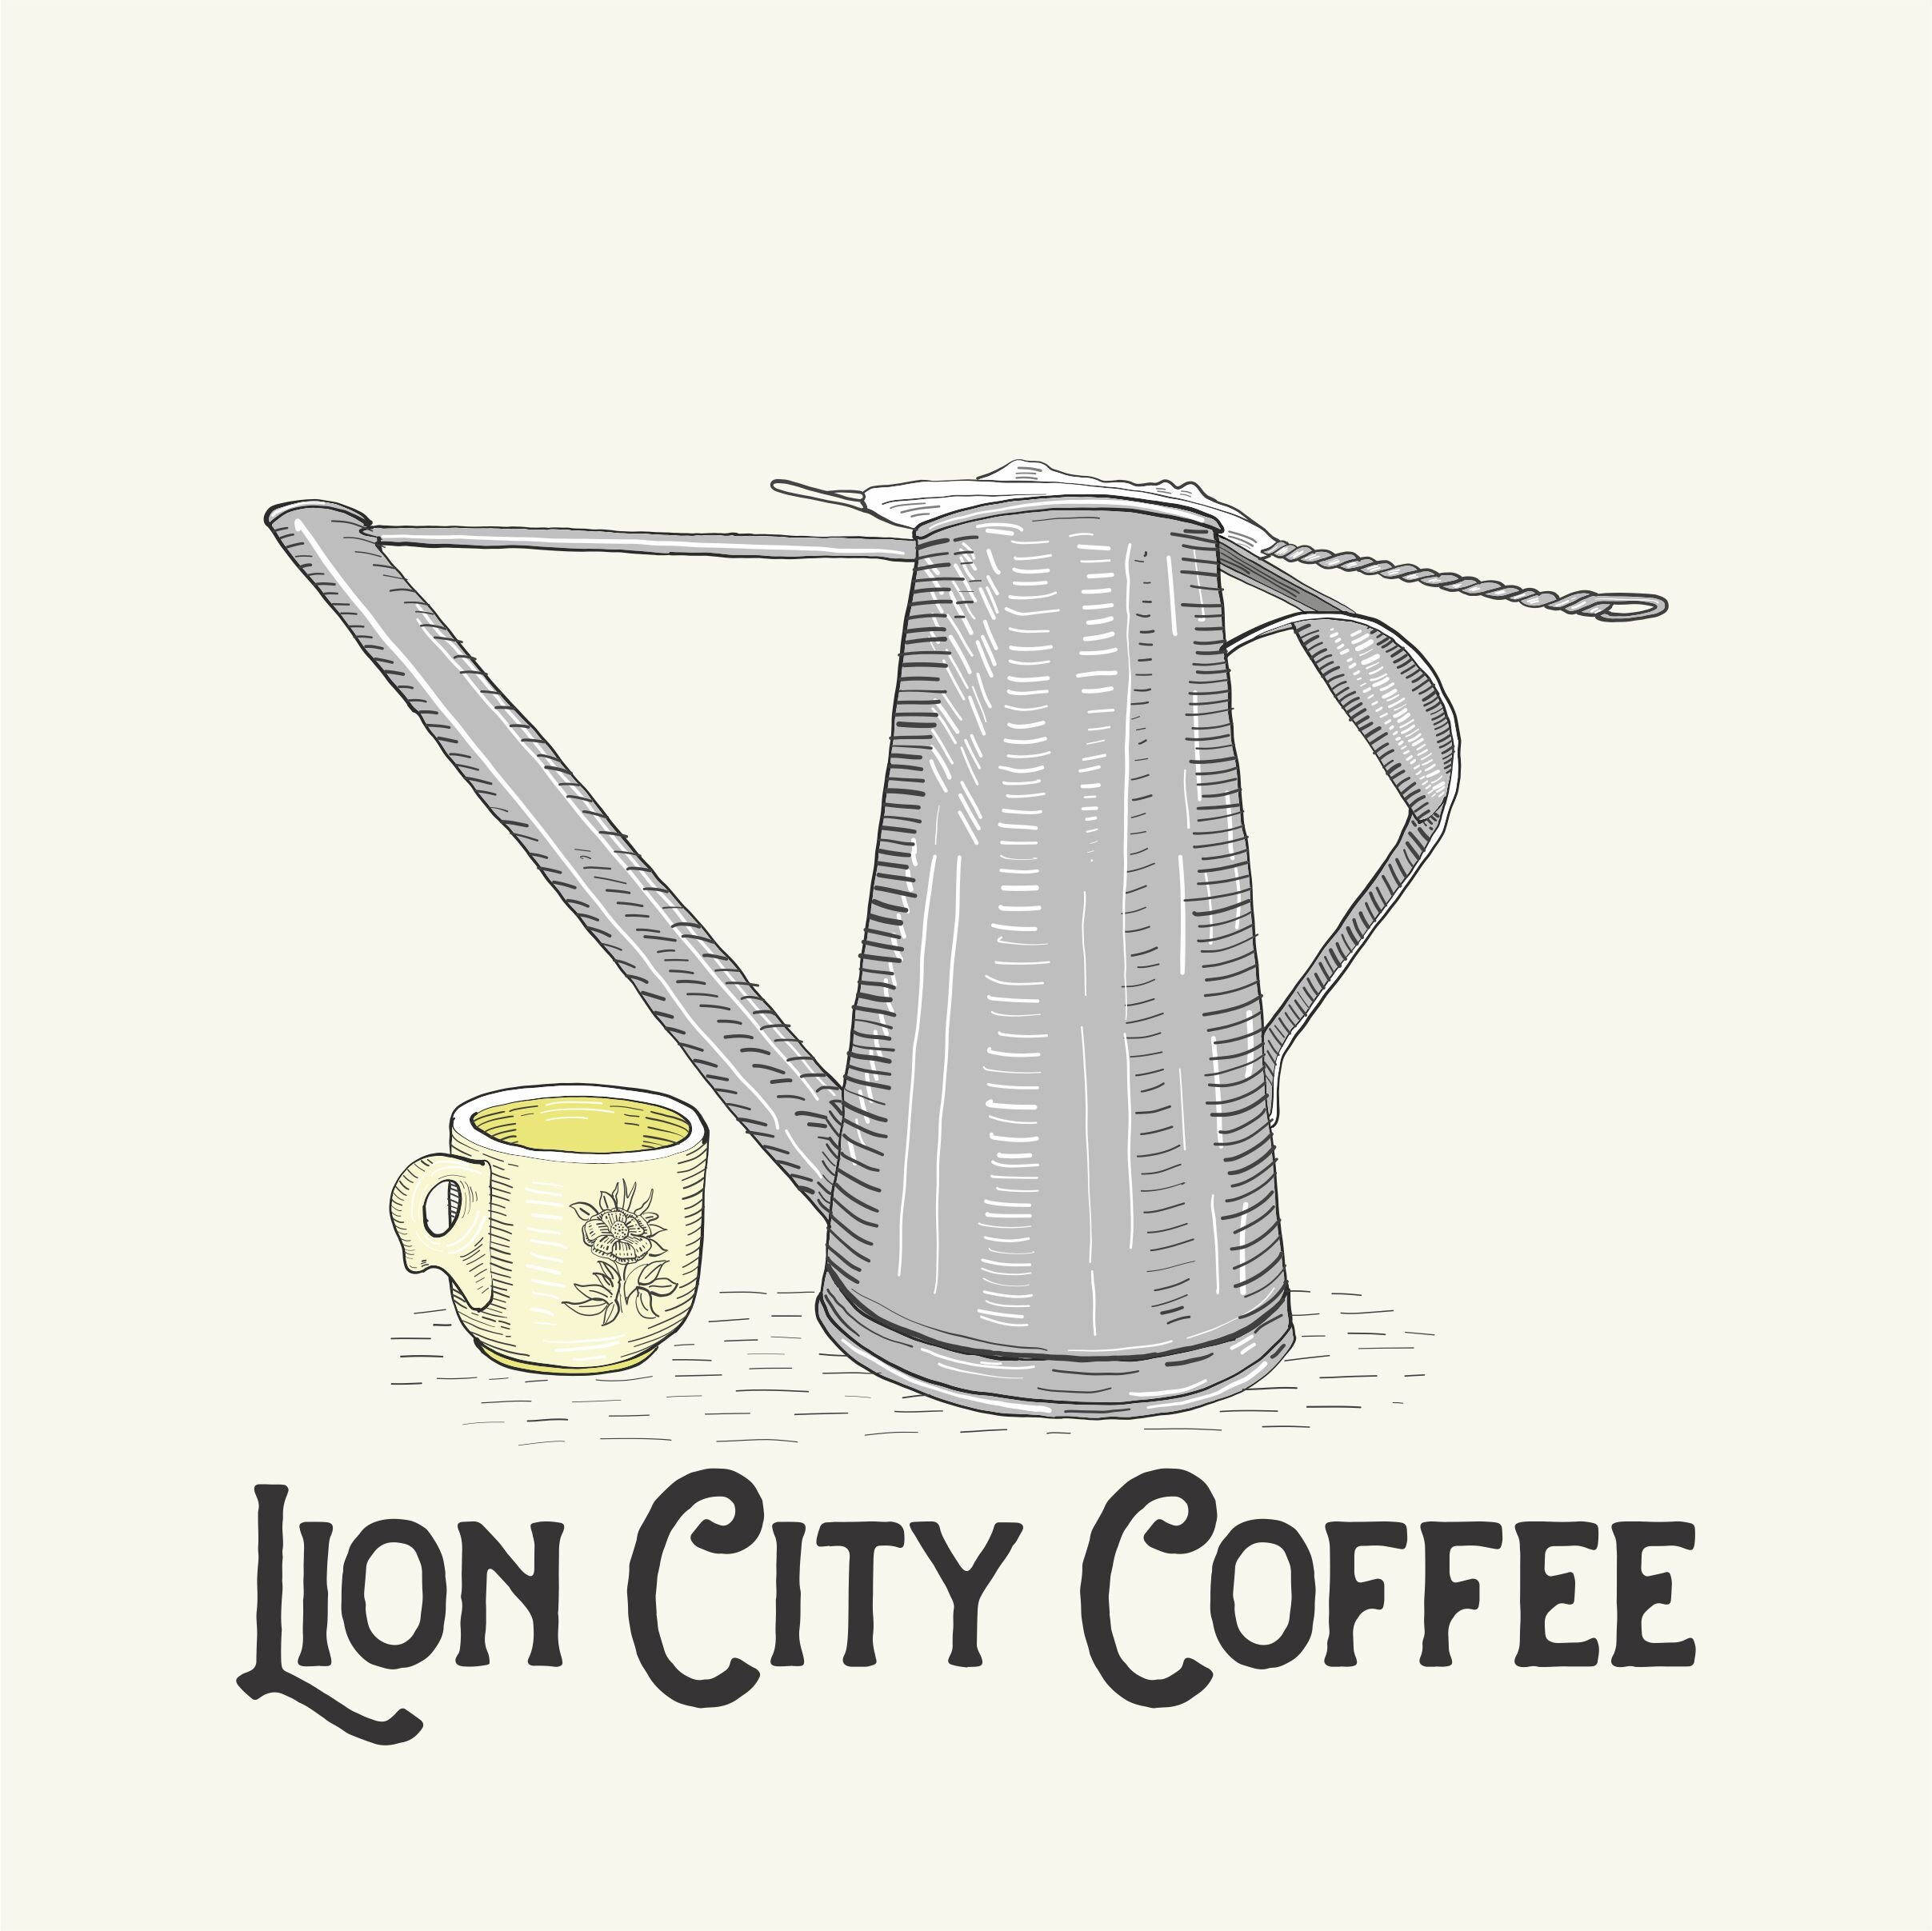 Lion City Coffee.jpg